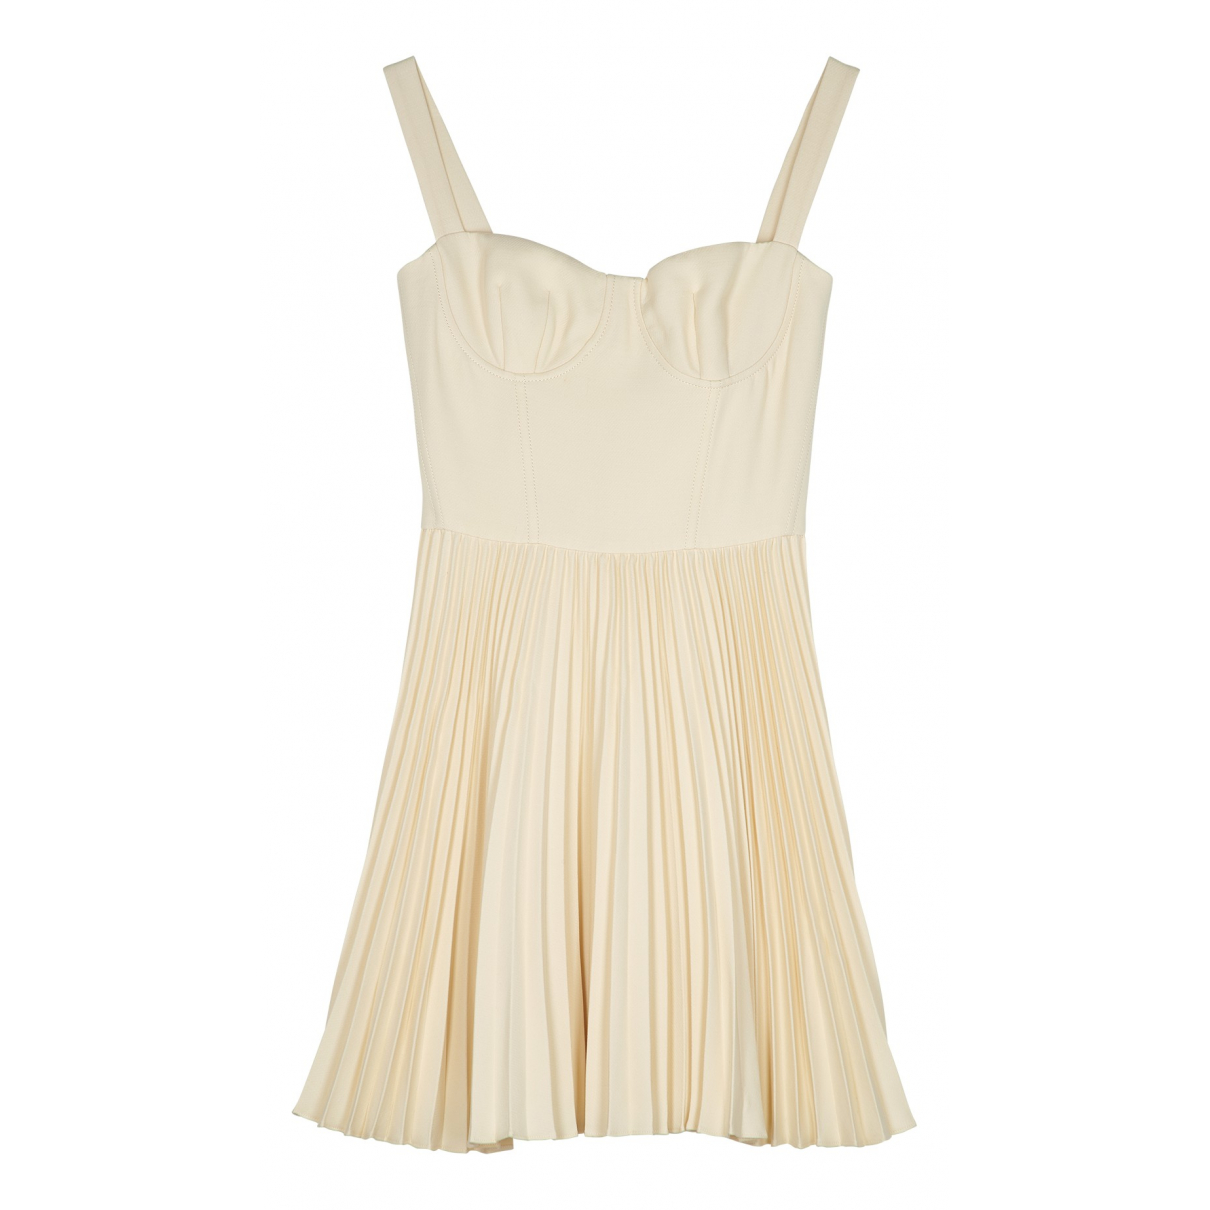 Dior \N Kleid in  Beige Wolle